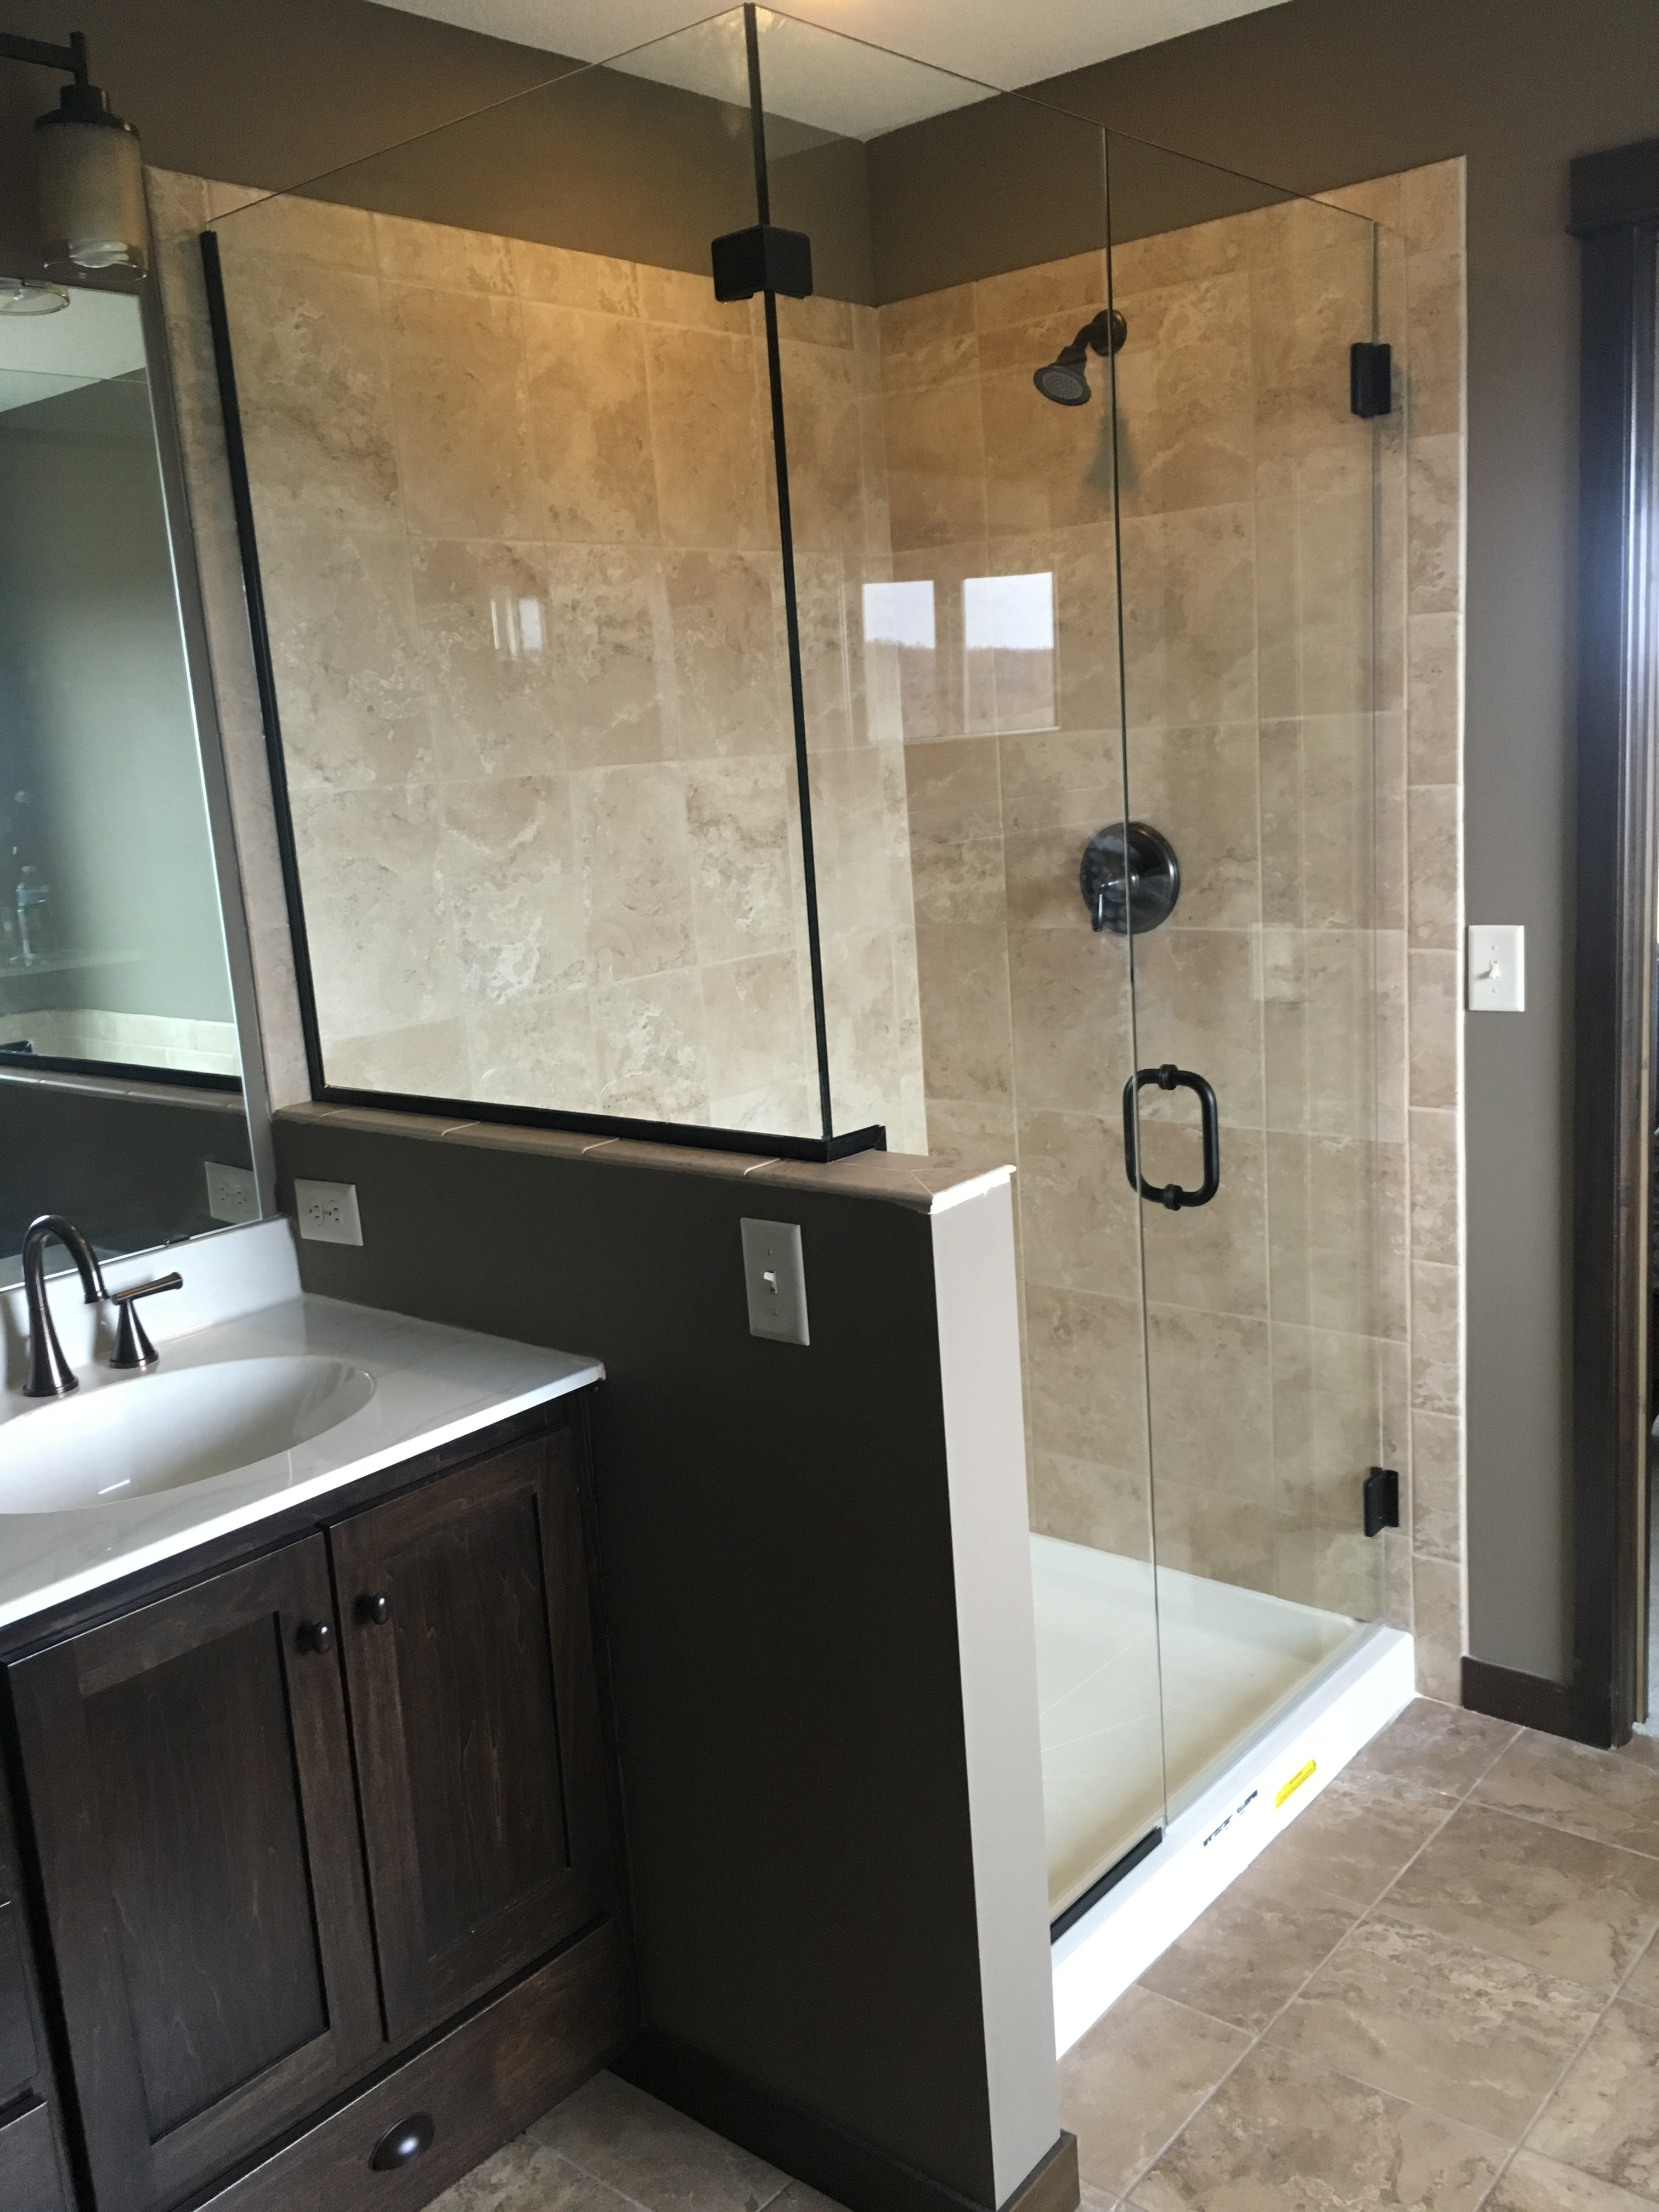 J & A Glass | Custom Shower Glass | Frosted, Tinted, Clear Shower ...